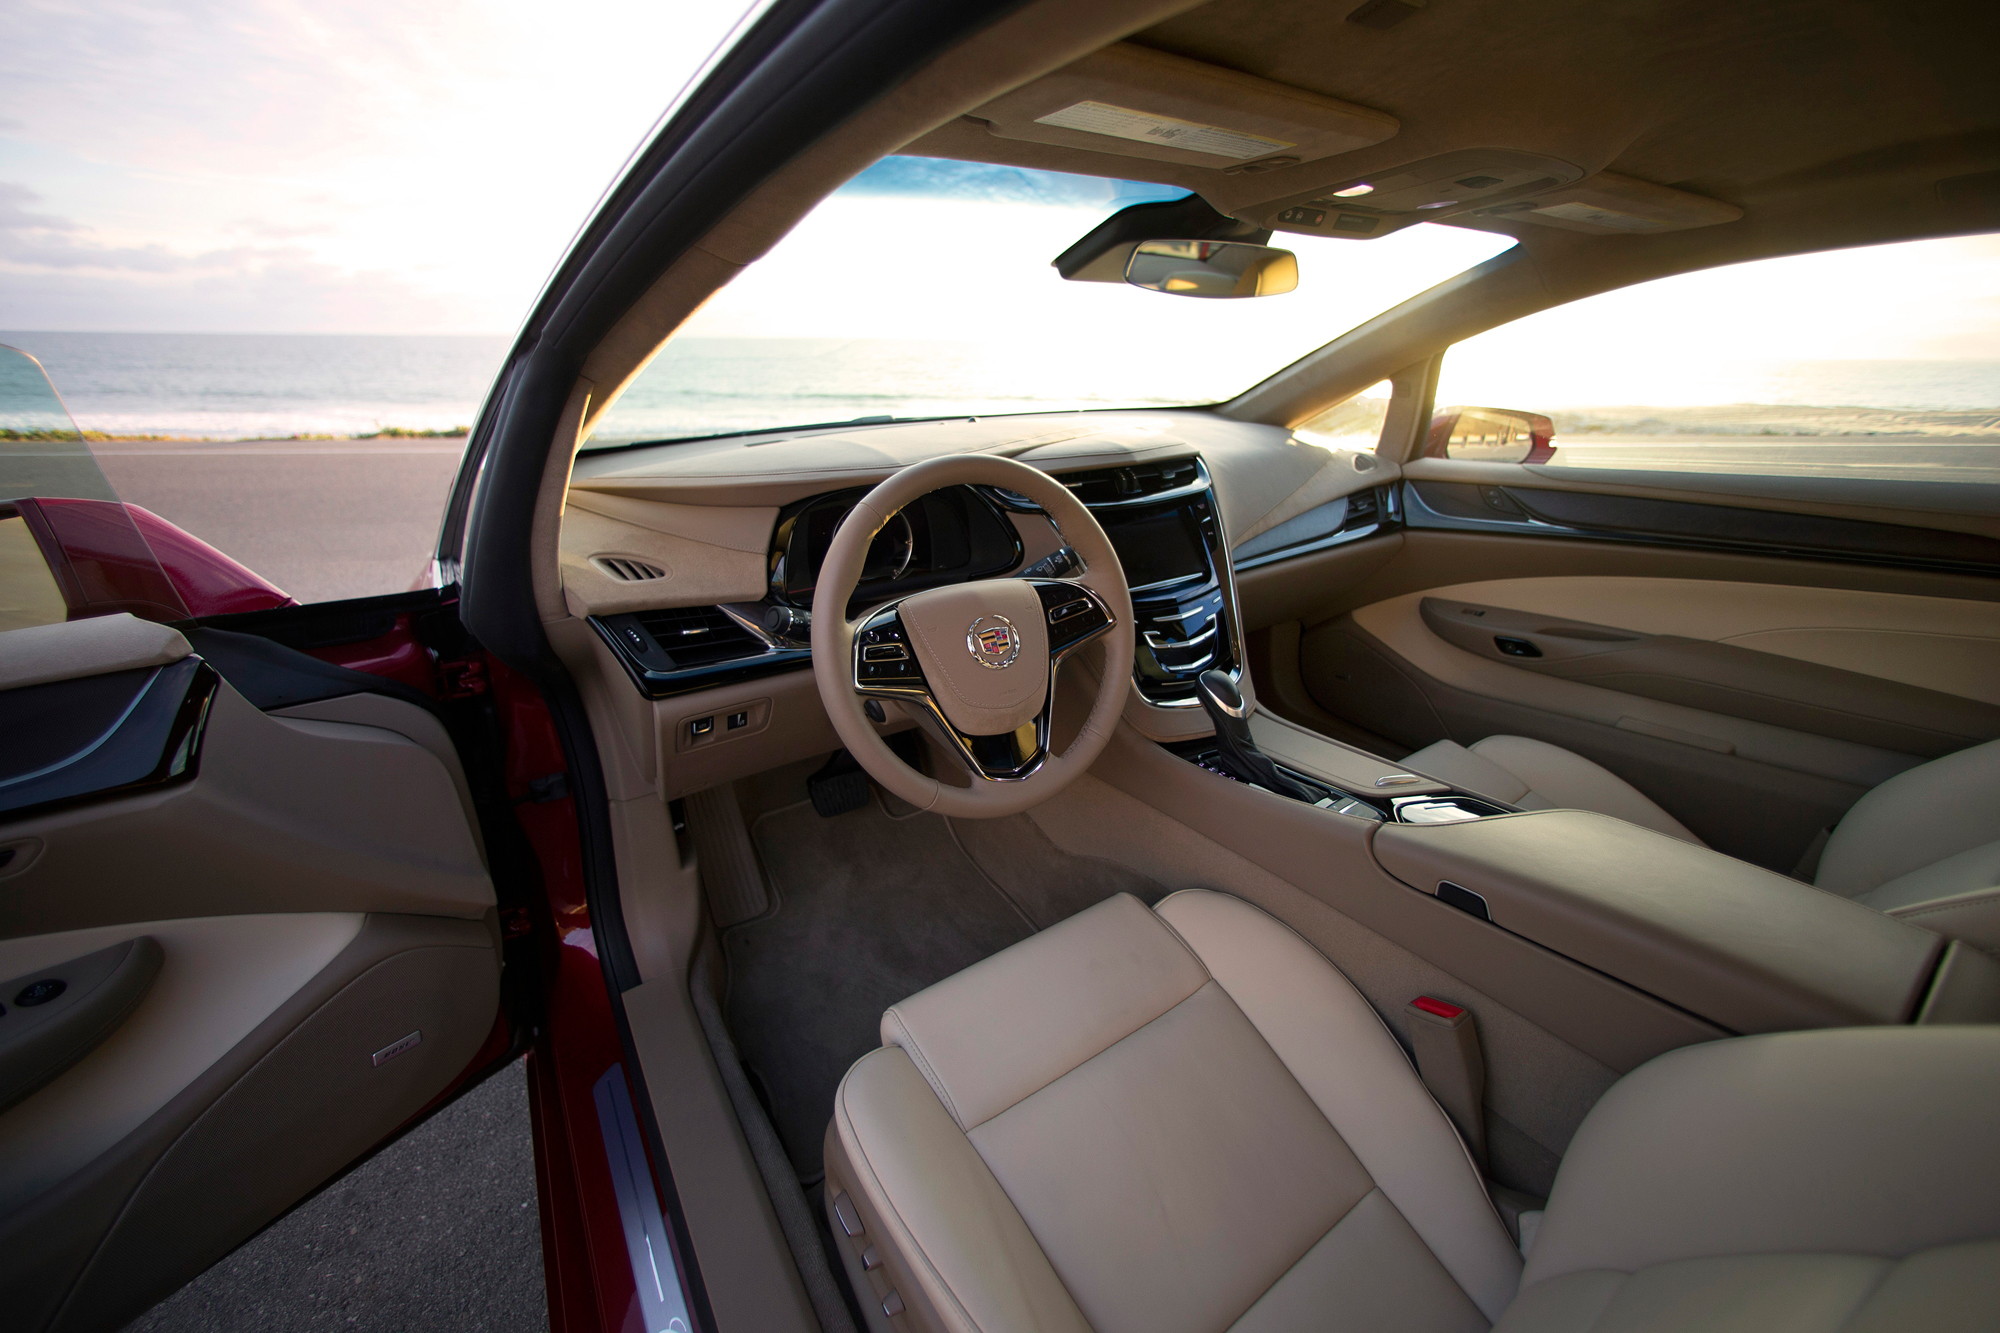 coupe at com ev sale cadillac news to start on elr premium go img in january will autobytel for